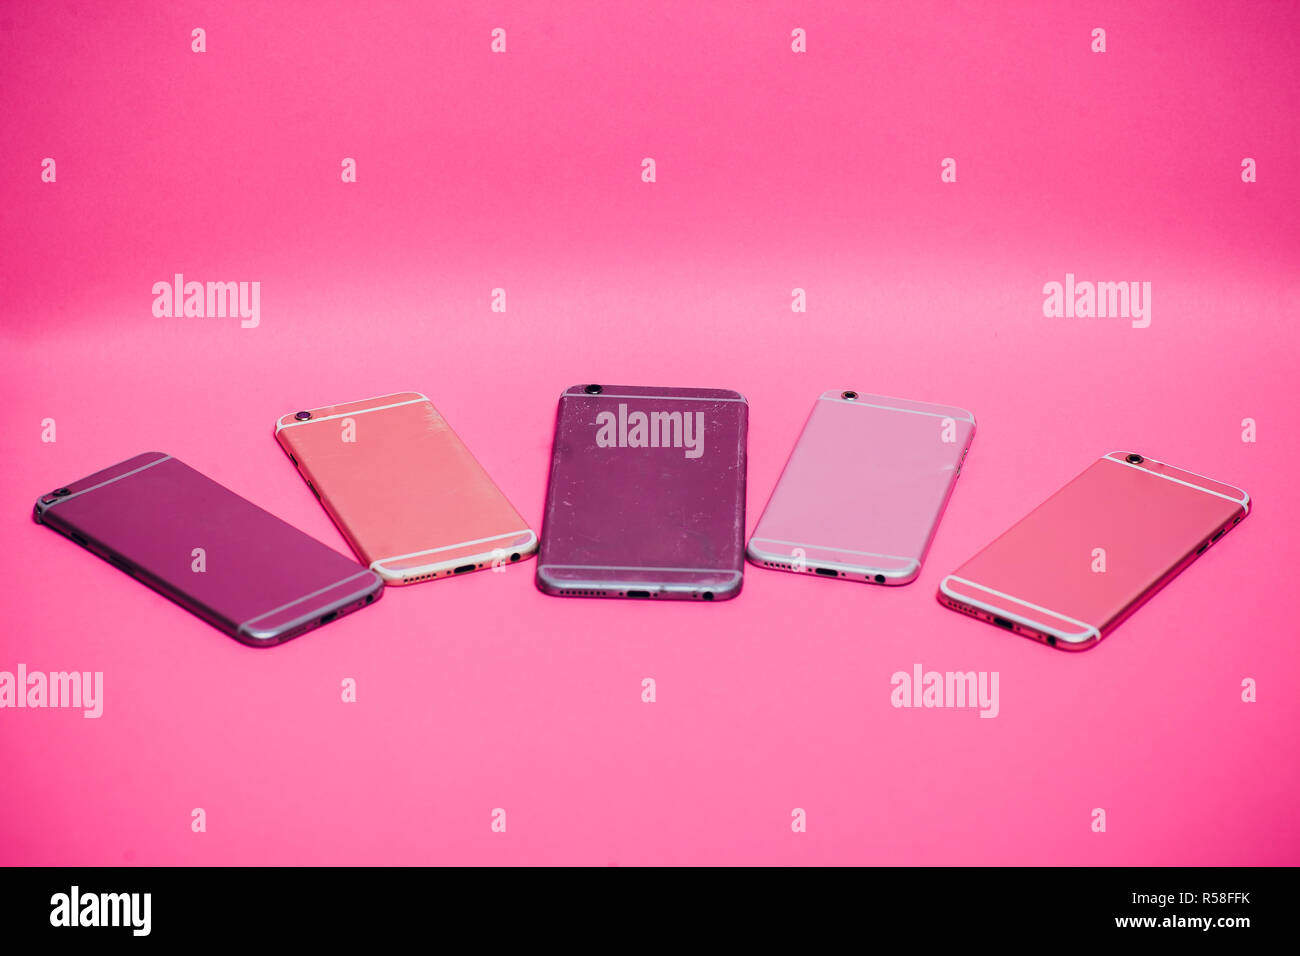 Broken mobile phone lies on a pink background. - Stock Image